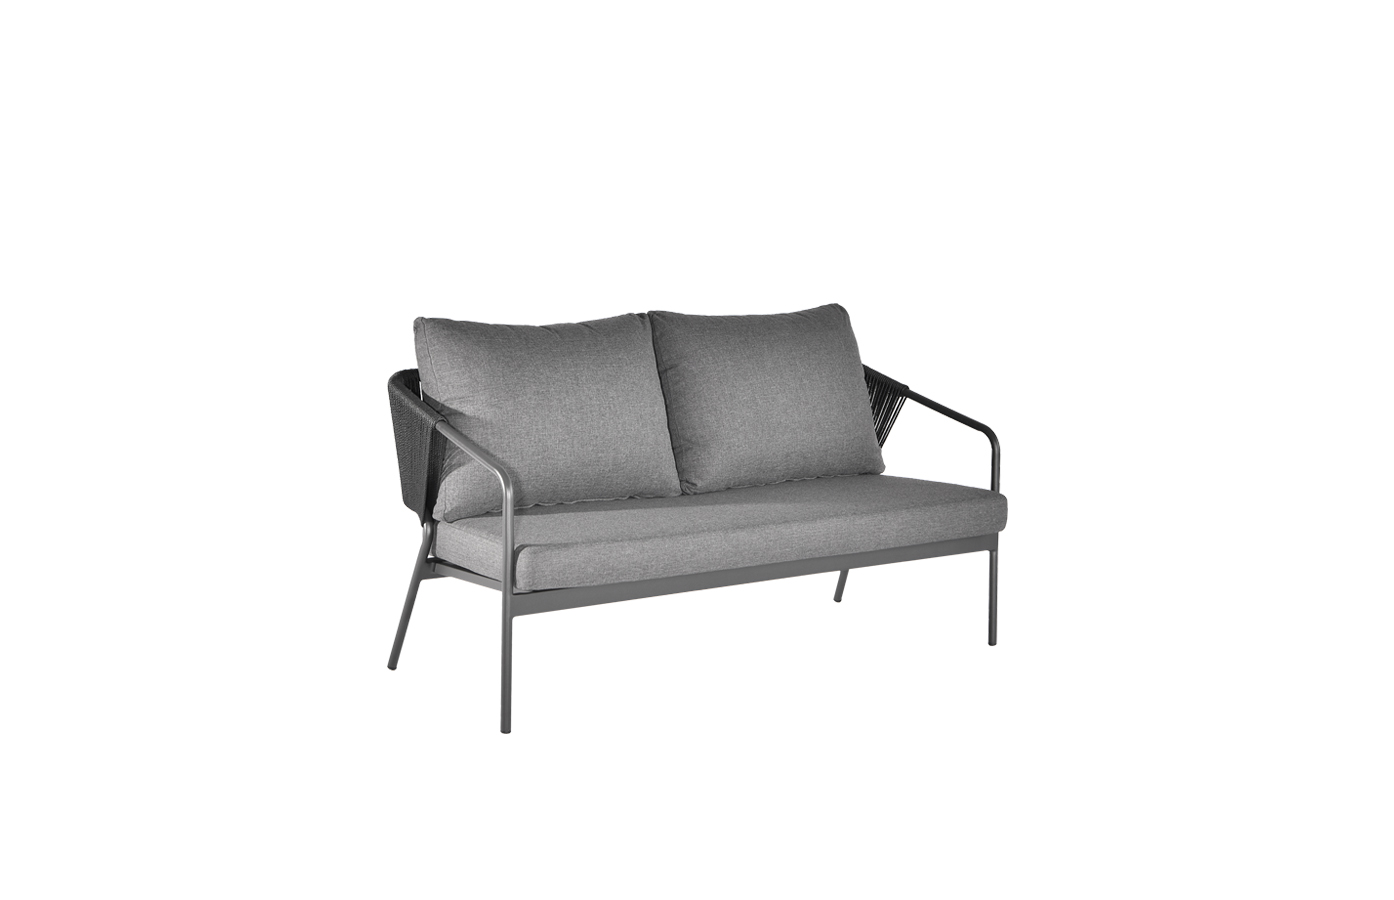 Guya 2-Seater Sofa